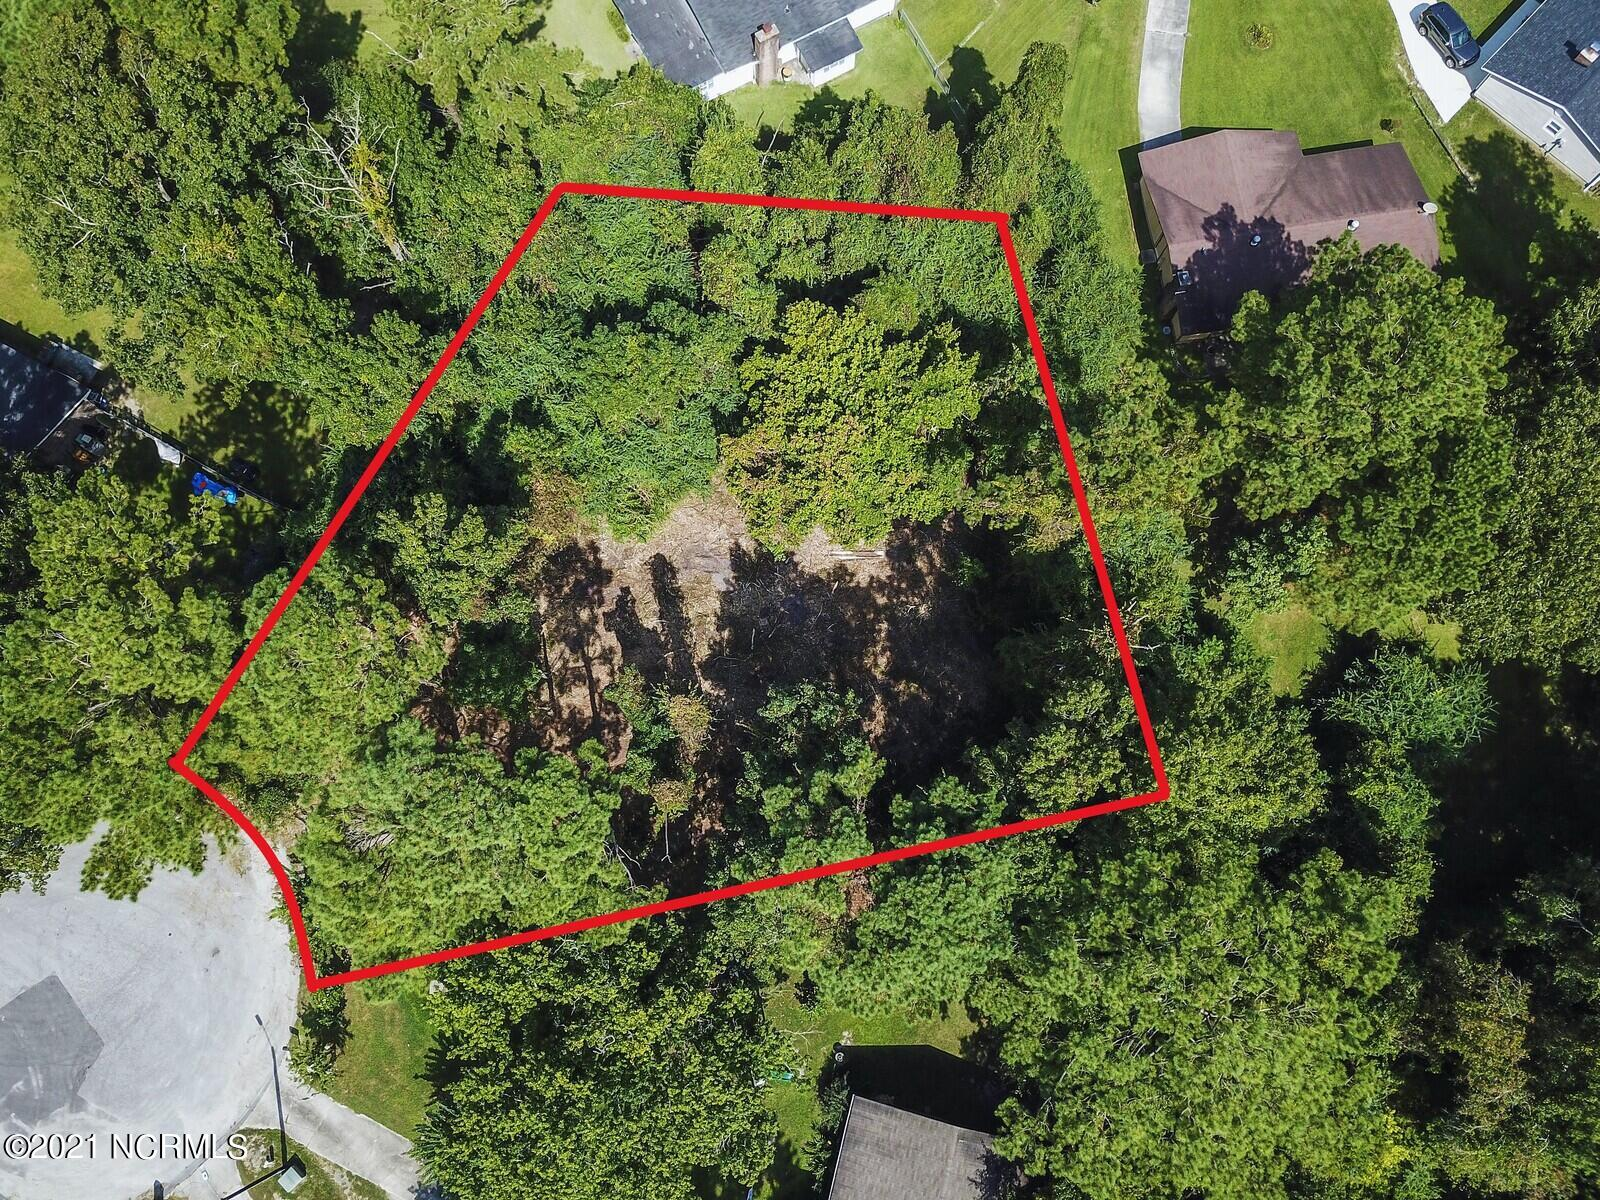 Property was just freshly cleared and cut for an easy perk test! Now is your chance to build in this prime .28 acre lot! A perfect spot for you and the family, just 10 miles away from Camp Lejeune's Main Gate. Less than 30 minutes south of North Topsail Beach or about 55 minutes north of Wrightsville beach - there are plenty of activities awaiting you here in this growing community with a variety that caters to everyone; whether it be outdoor recreation, shopping downtown, dining at one our many amazing restaurants, boating down New River & Stones Bay toward Wilmington until reaching the Intracoastal Water Way towards Topsail.I can tell you that there are public water sources, a septic tank will be needed and access to local electric utilities. 1983 is the last time the covenants were updated with building restrictions so I have uploaded them for your review as well!